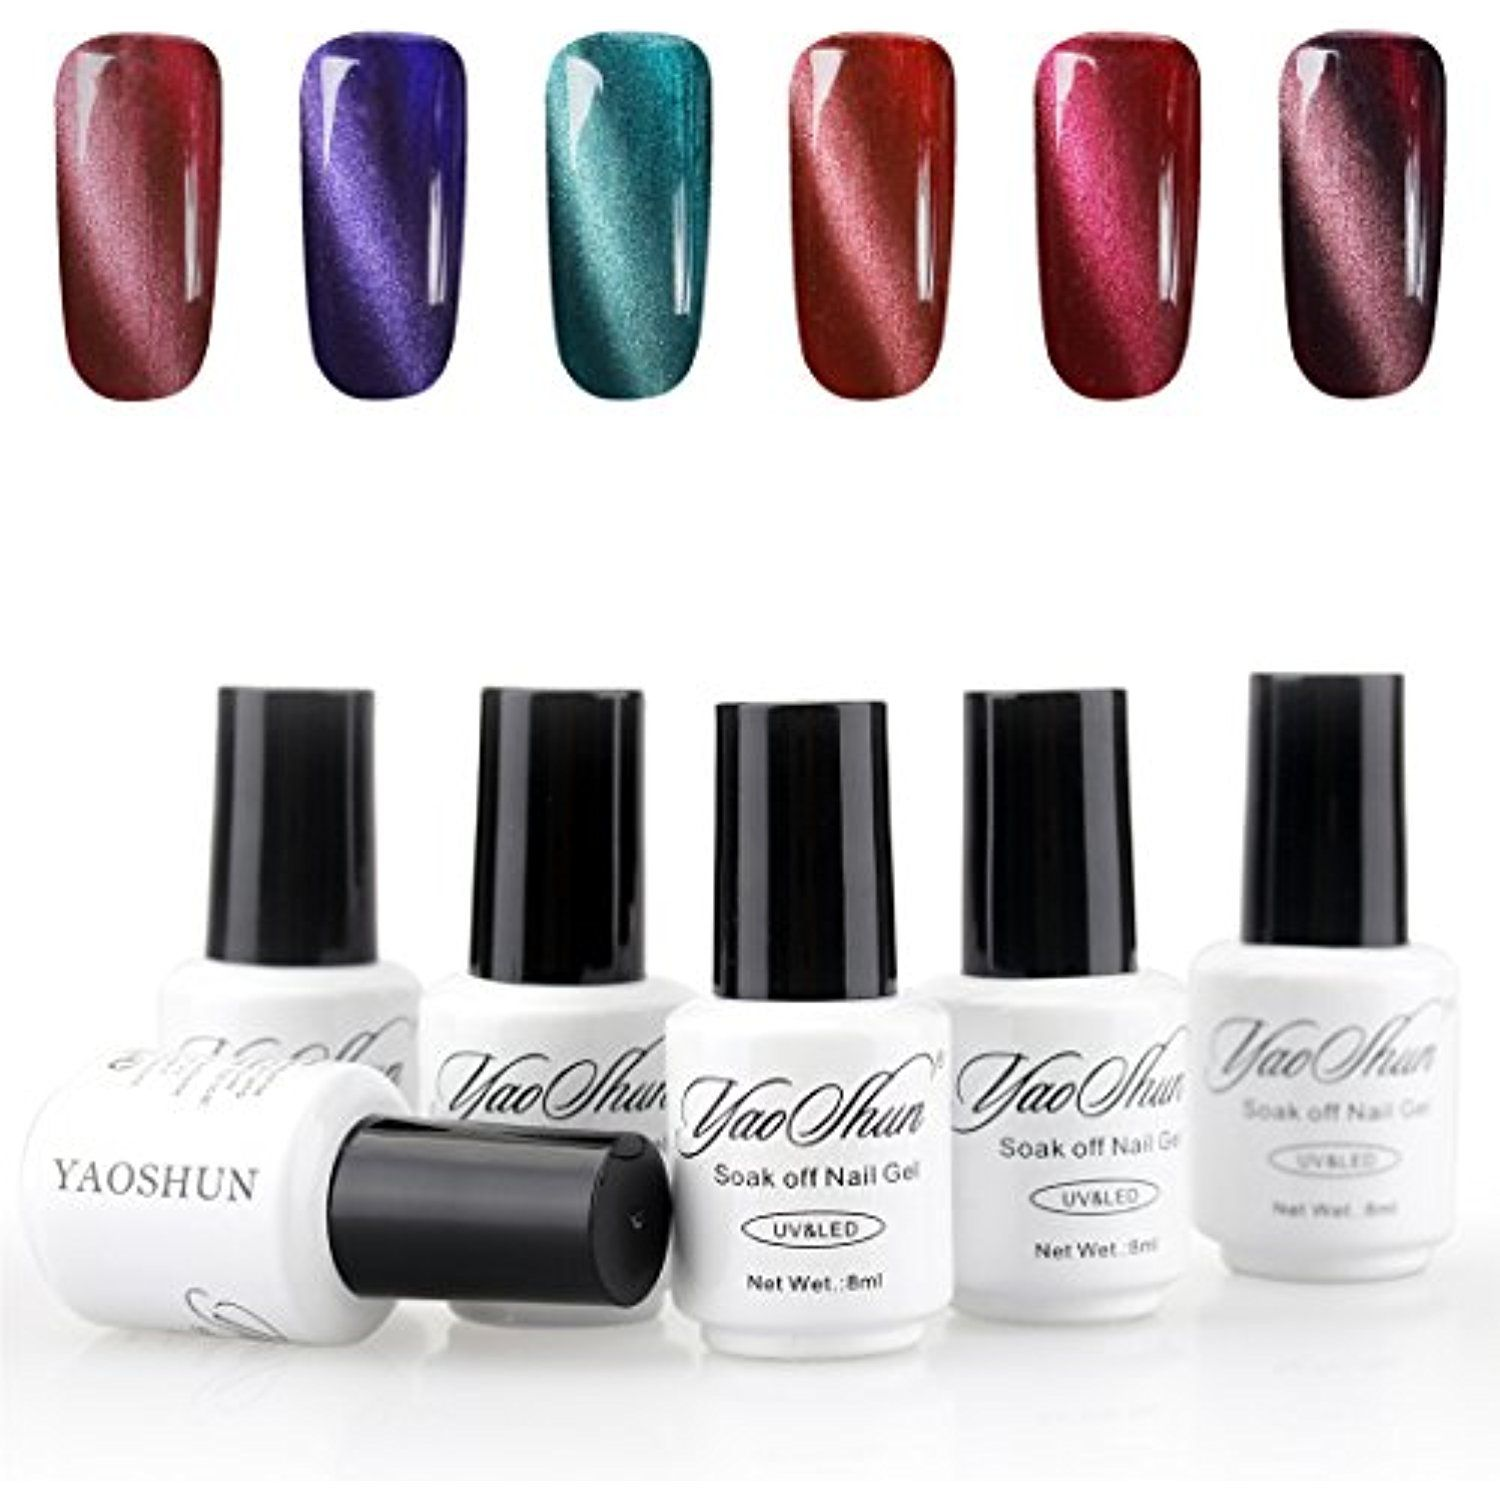 YaoShun Magnetic Gel Nail Polish Charming 3D Cat Eye Effect UV/LED ...